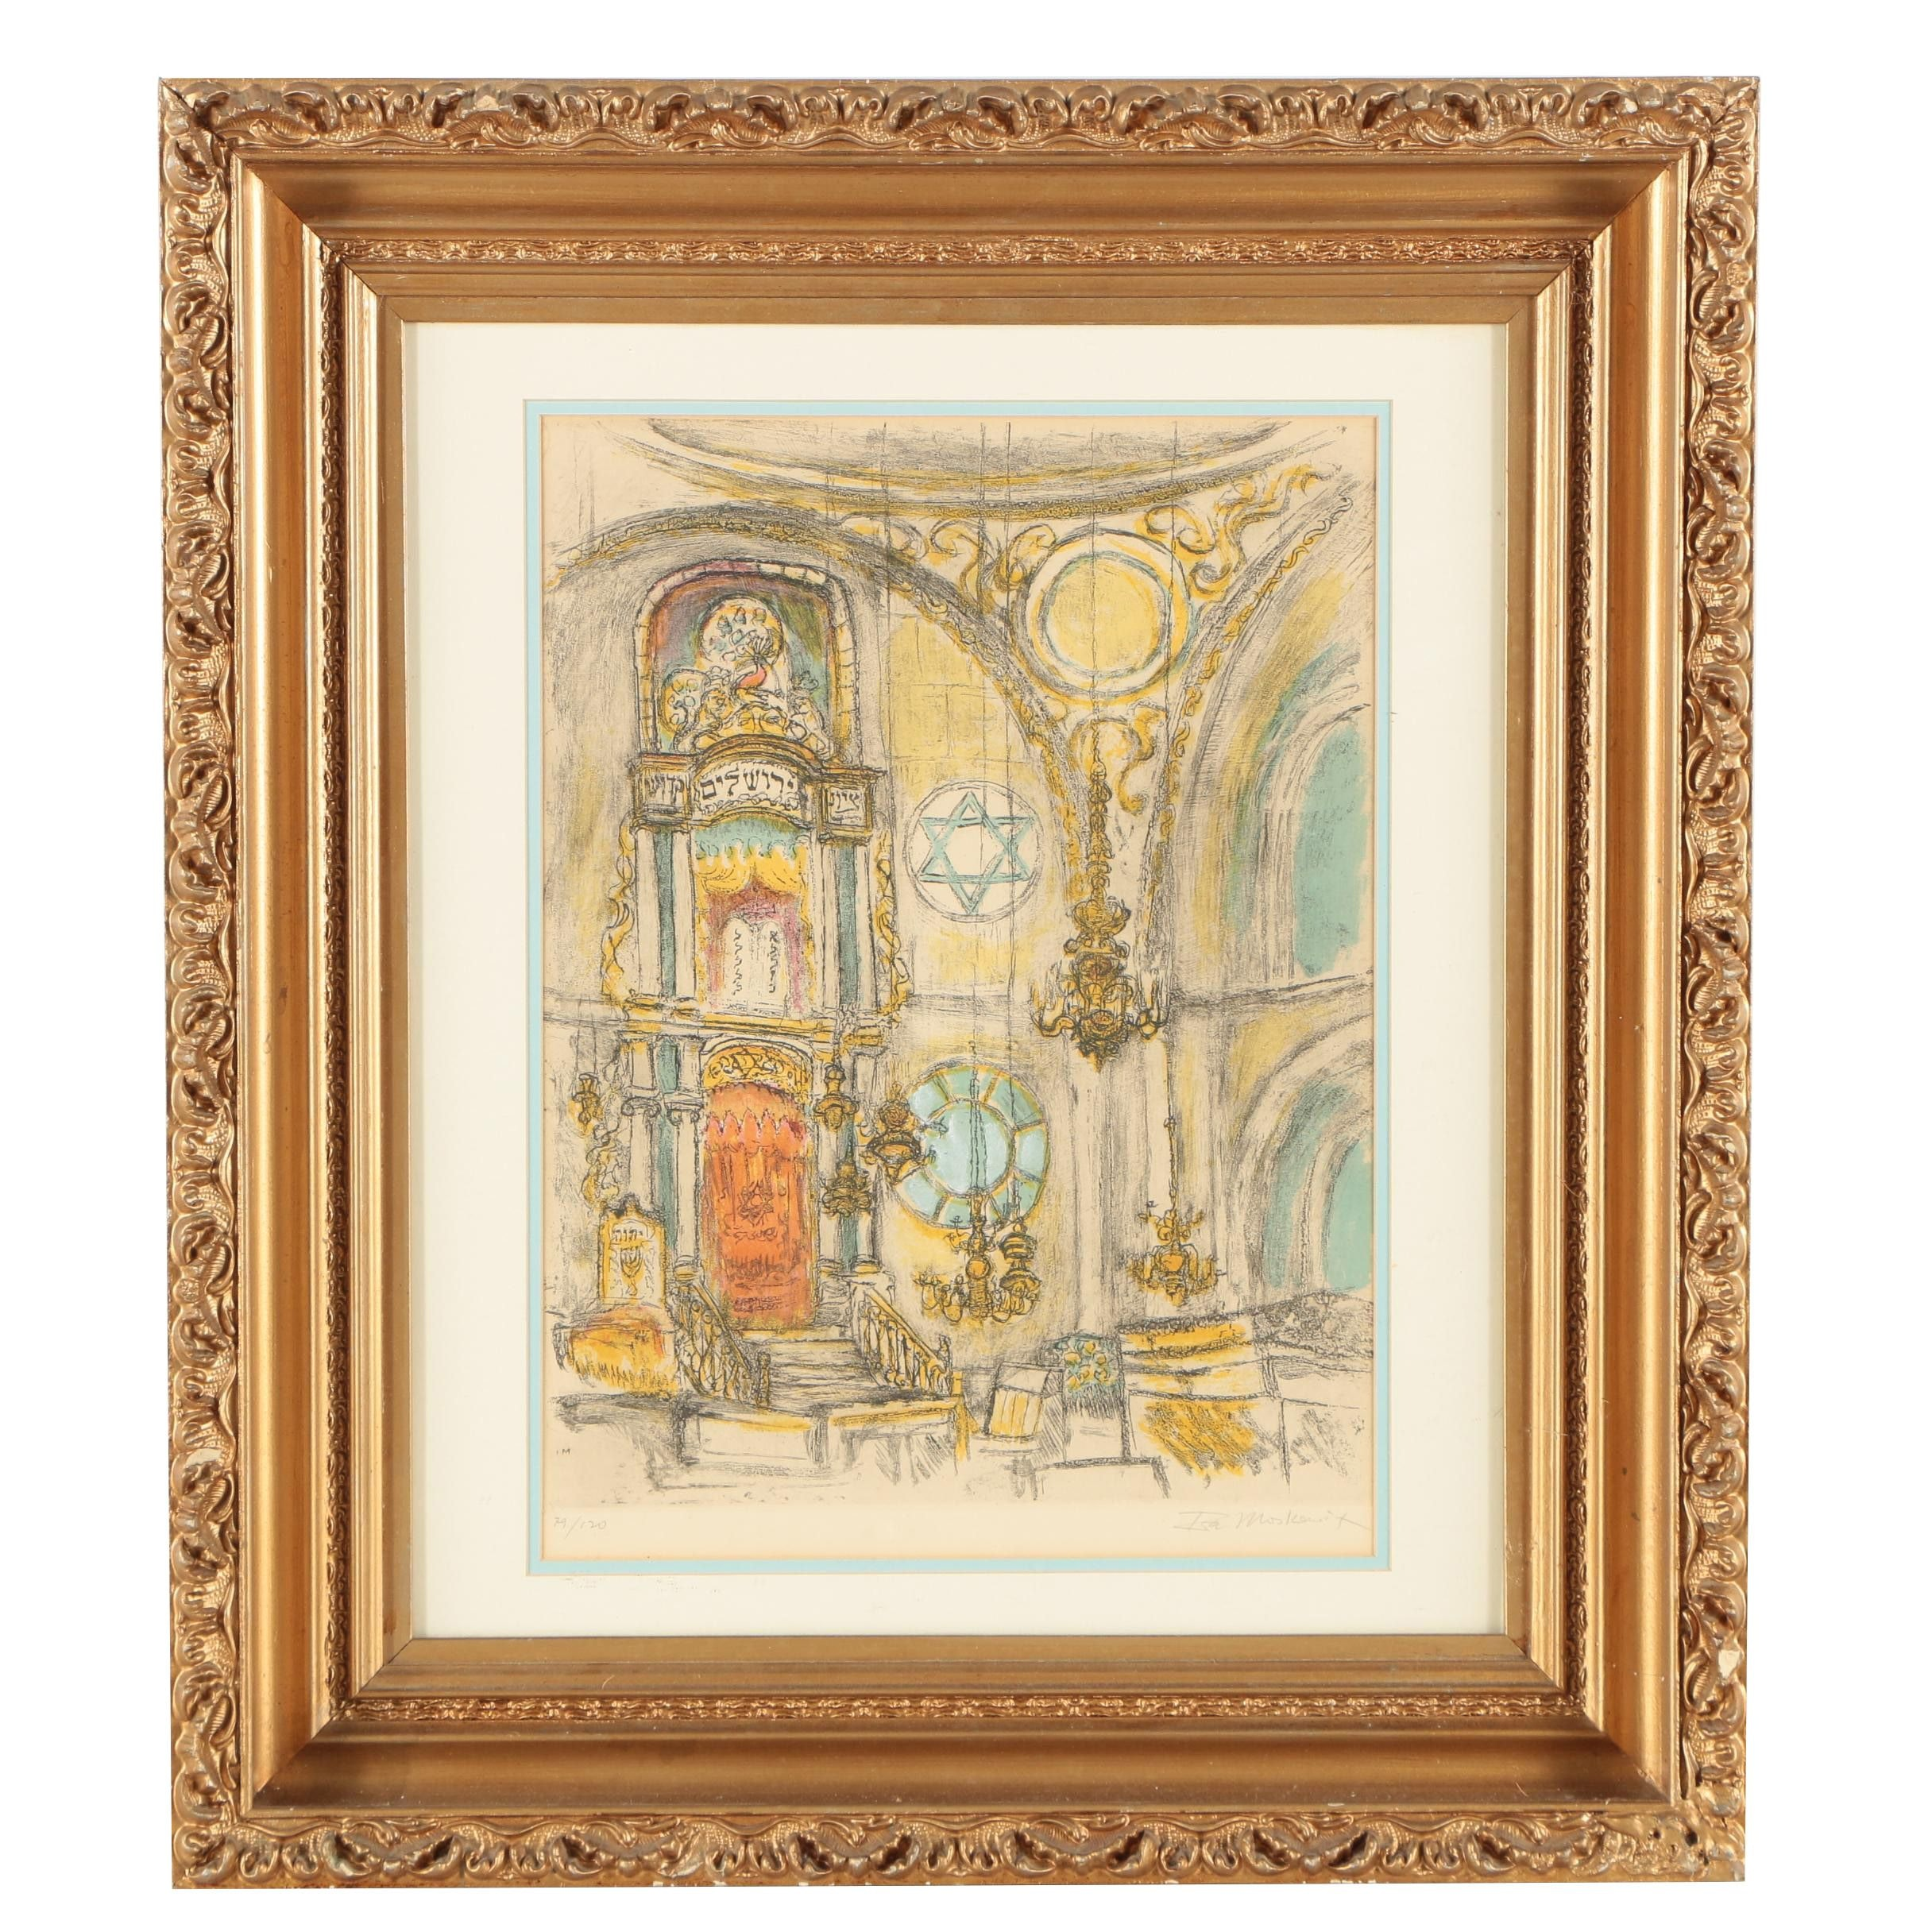 Ira Moskowitz Color Lithograph Print of Synagogue Interior